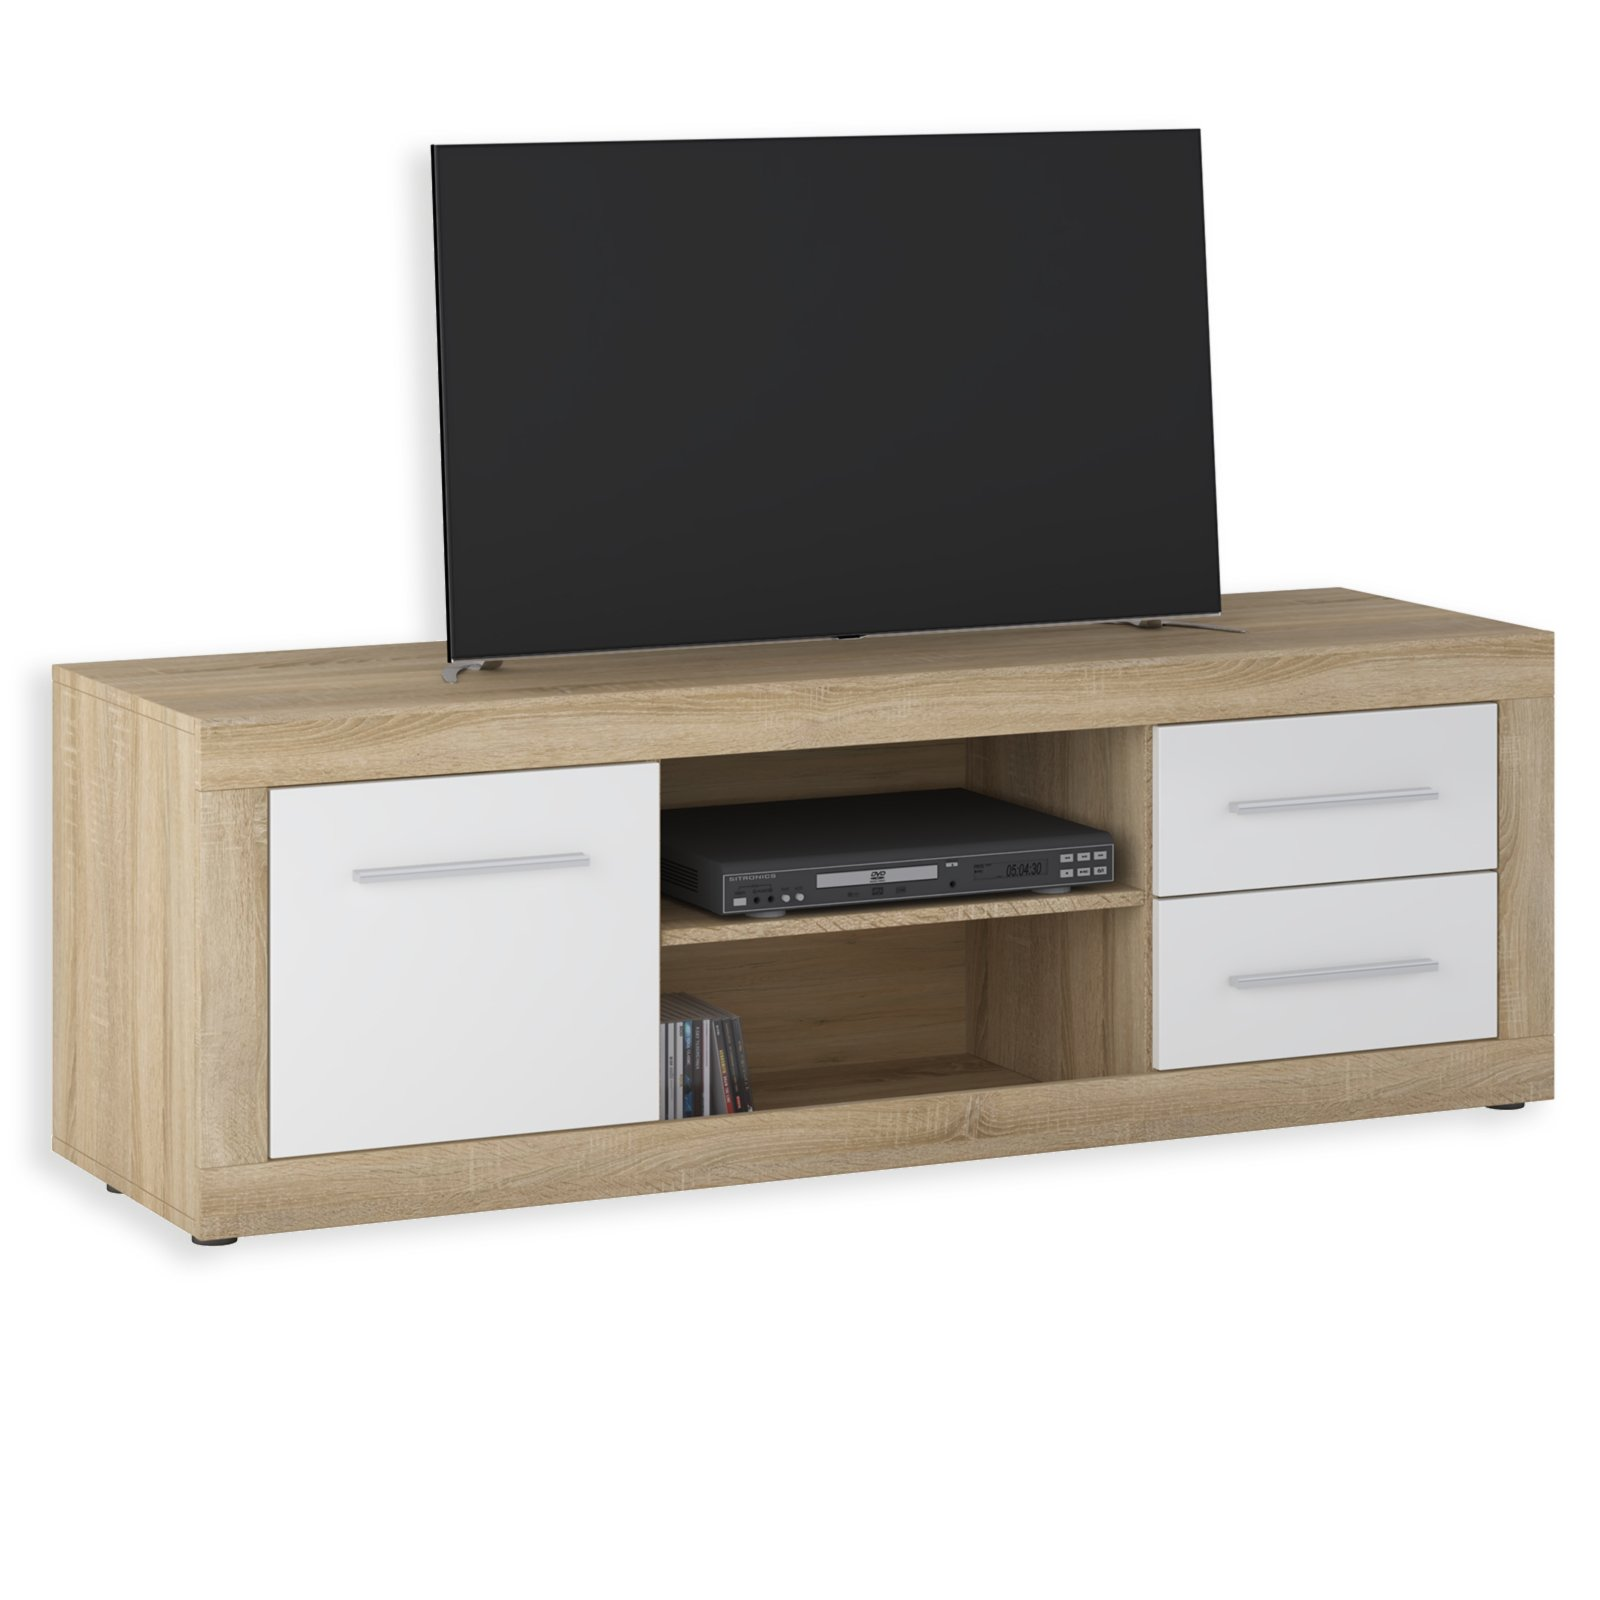 lowboard jana sonoma eiche wei 155 cm tv lowboards. Black Bedroom Furniture Sets. Home Design Ideas